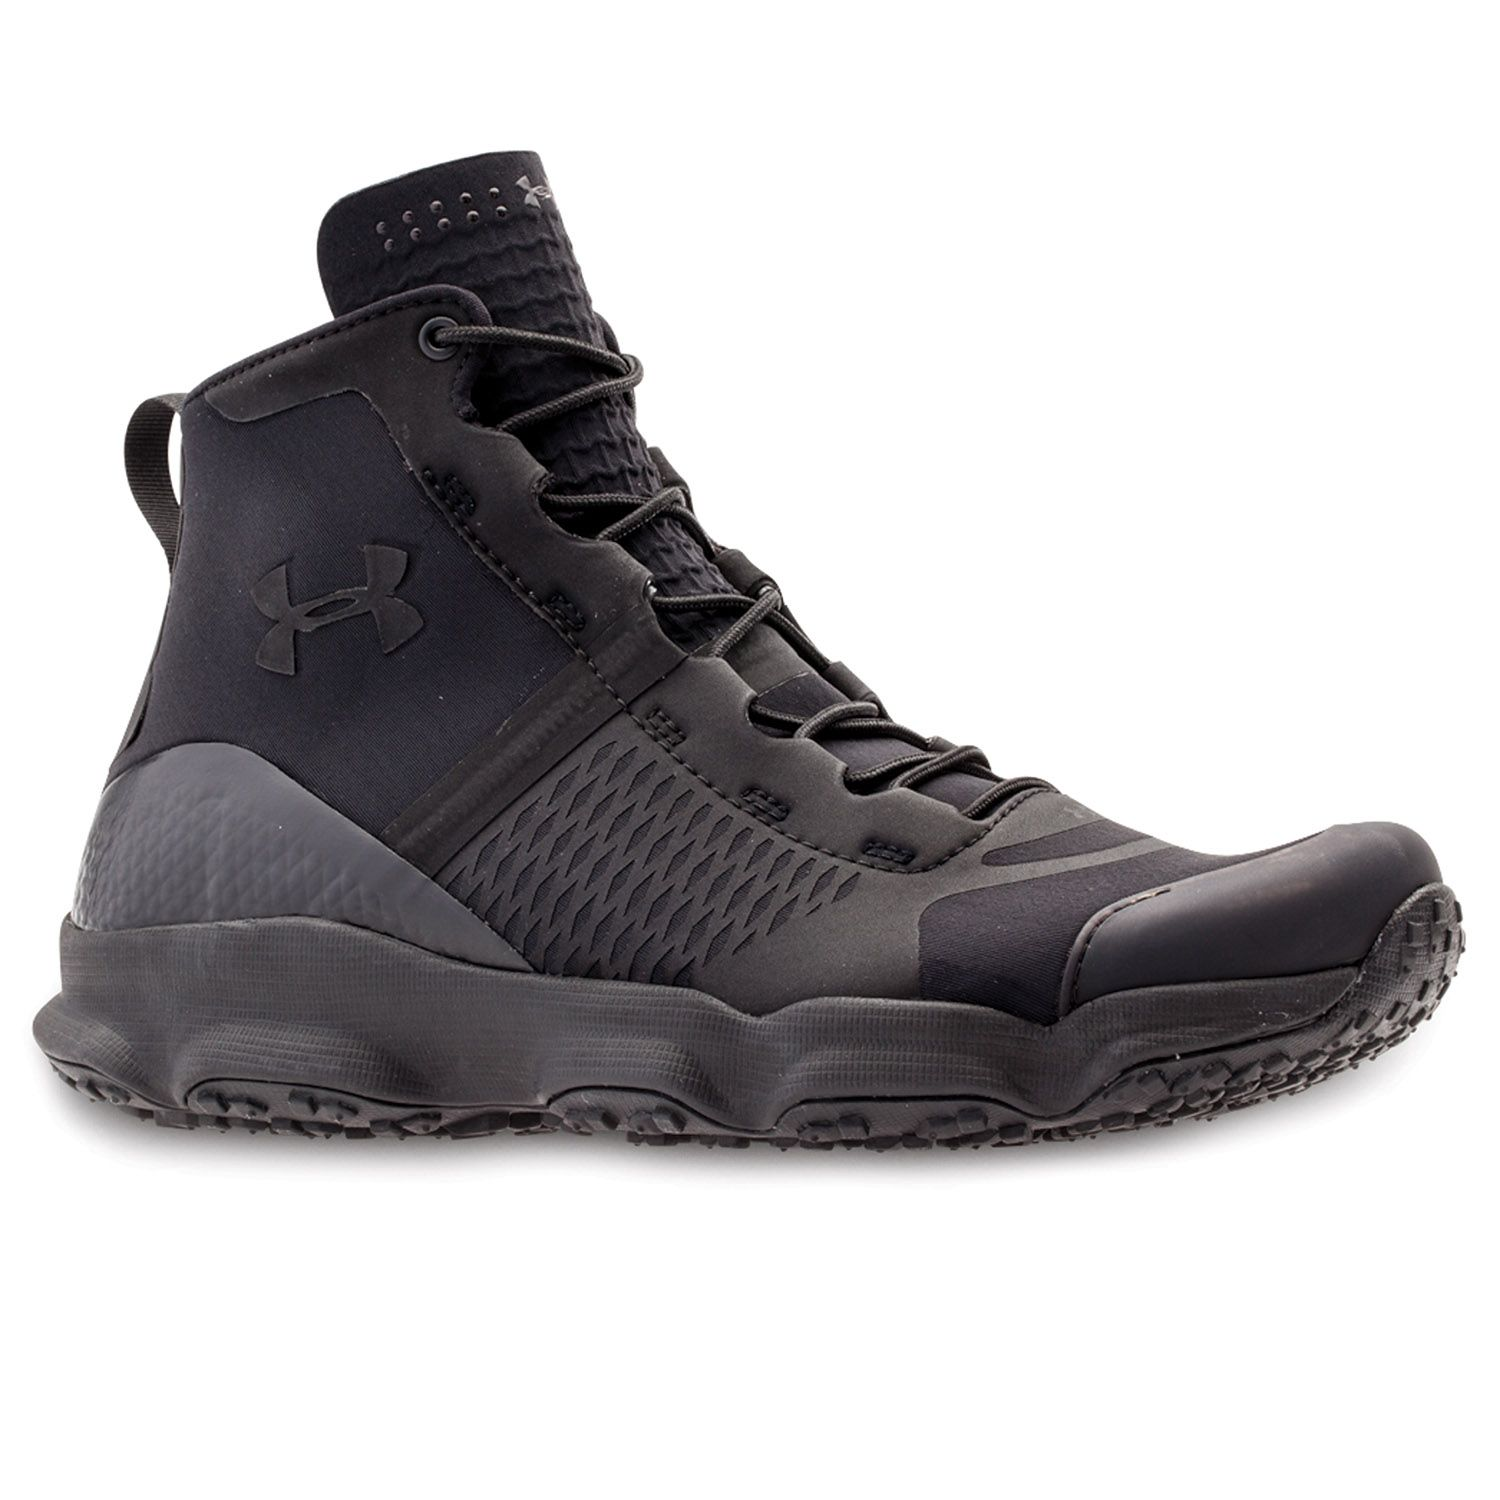 Under Armour Ua Speedfit Hike Mid Boots 1257447 / Black - All Sizes